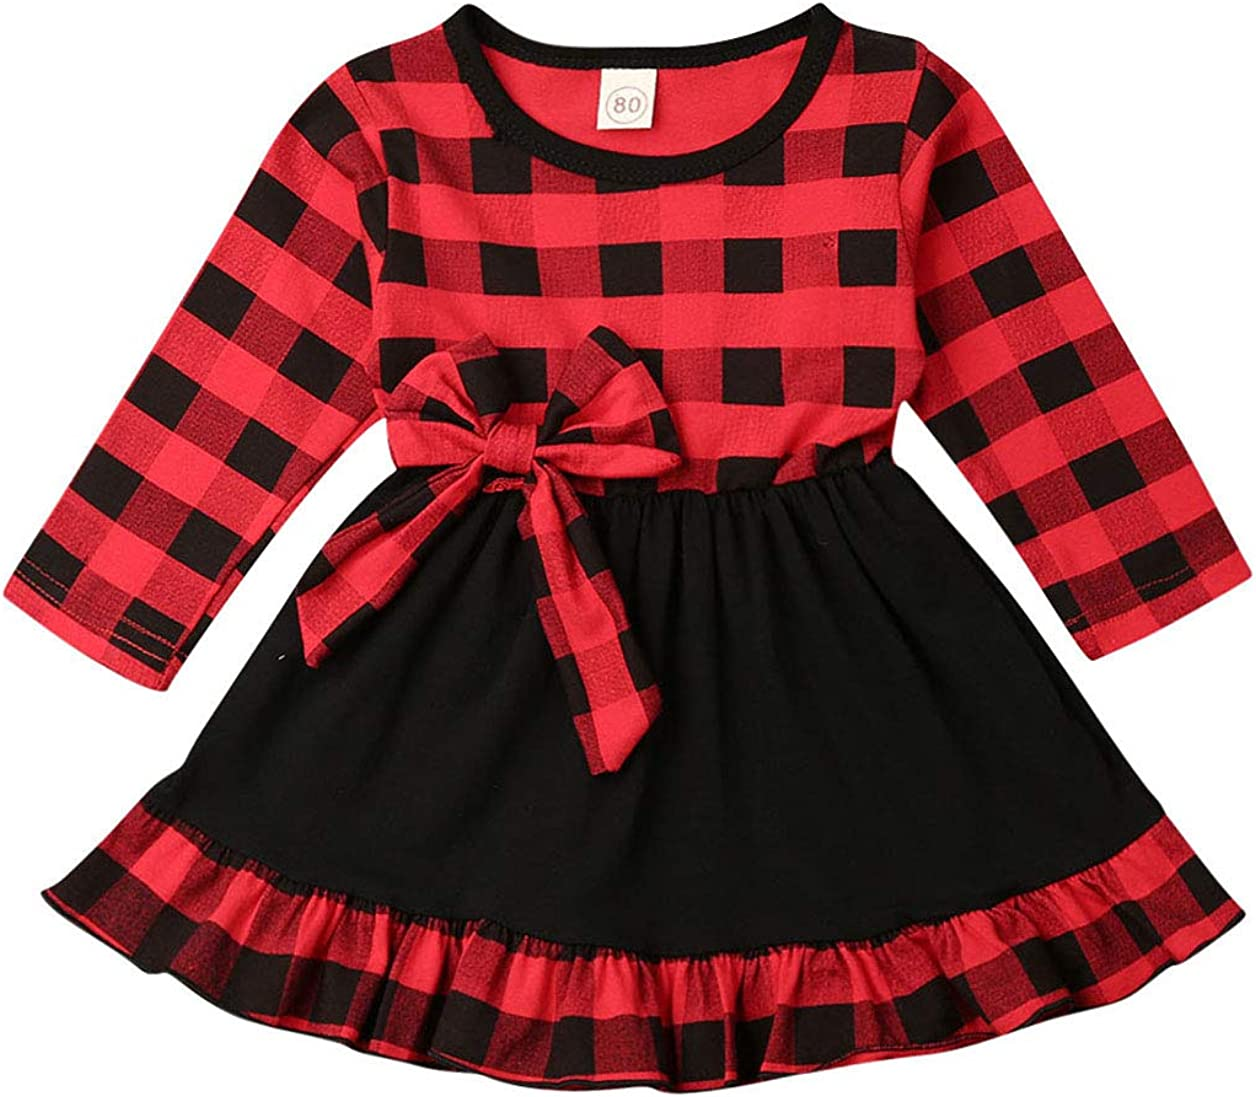 Toddler Baby Girl Plaid Christmas Dress Long Sleeve Ruffle Plaid Dress Xmas Clothes Fall Winter Outfits Party Dress